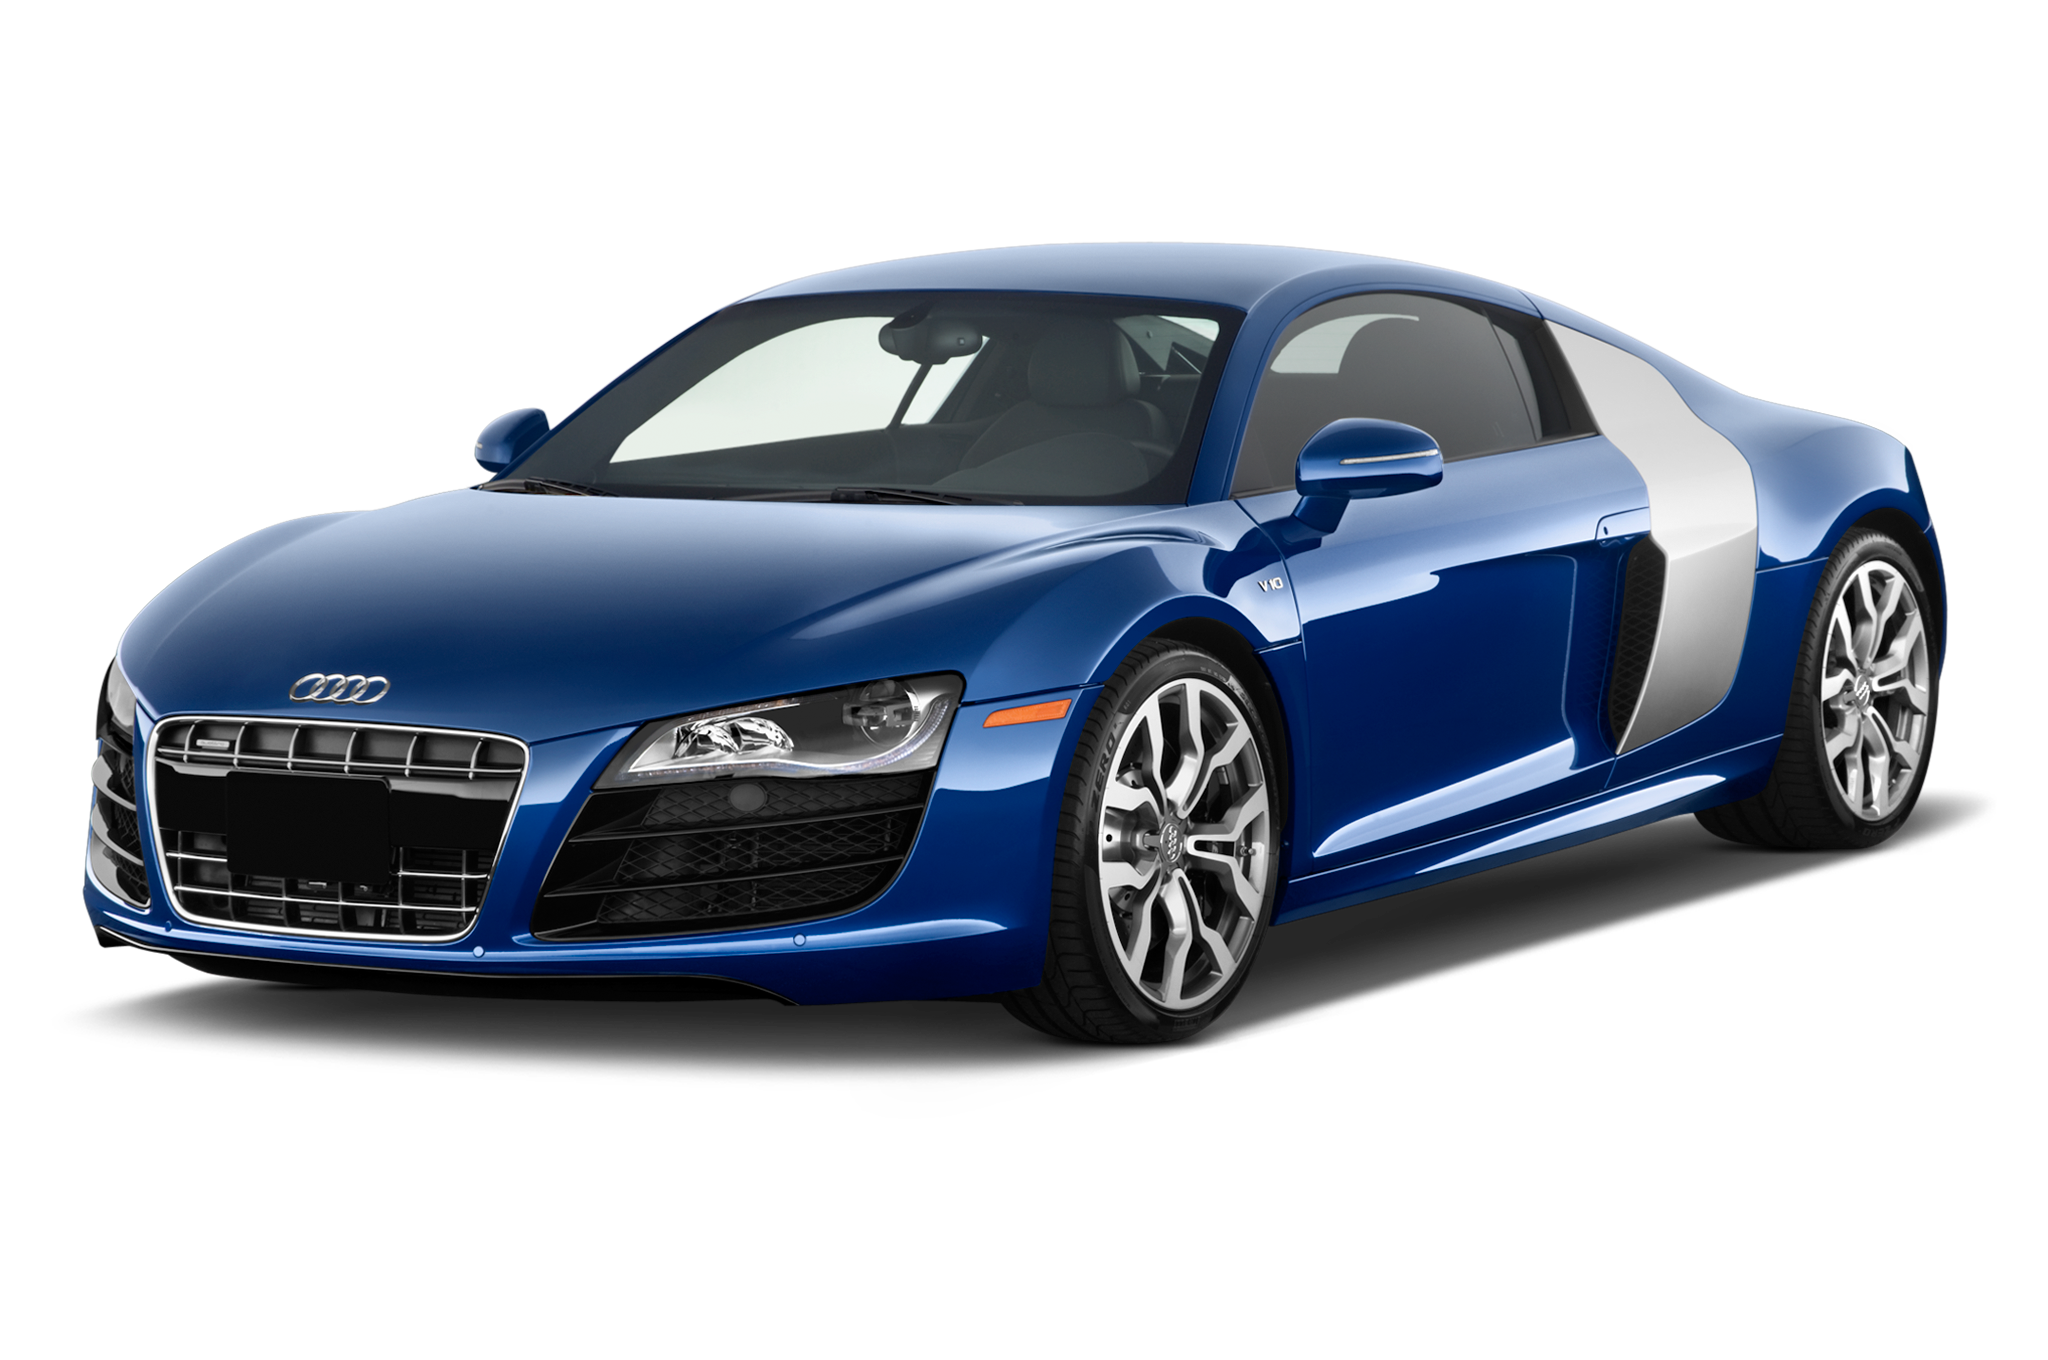 2010 Audi R8 V10 Audi Sport Coupe Review Automobile